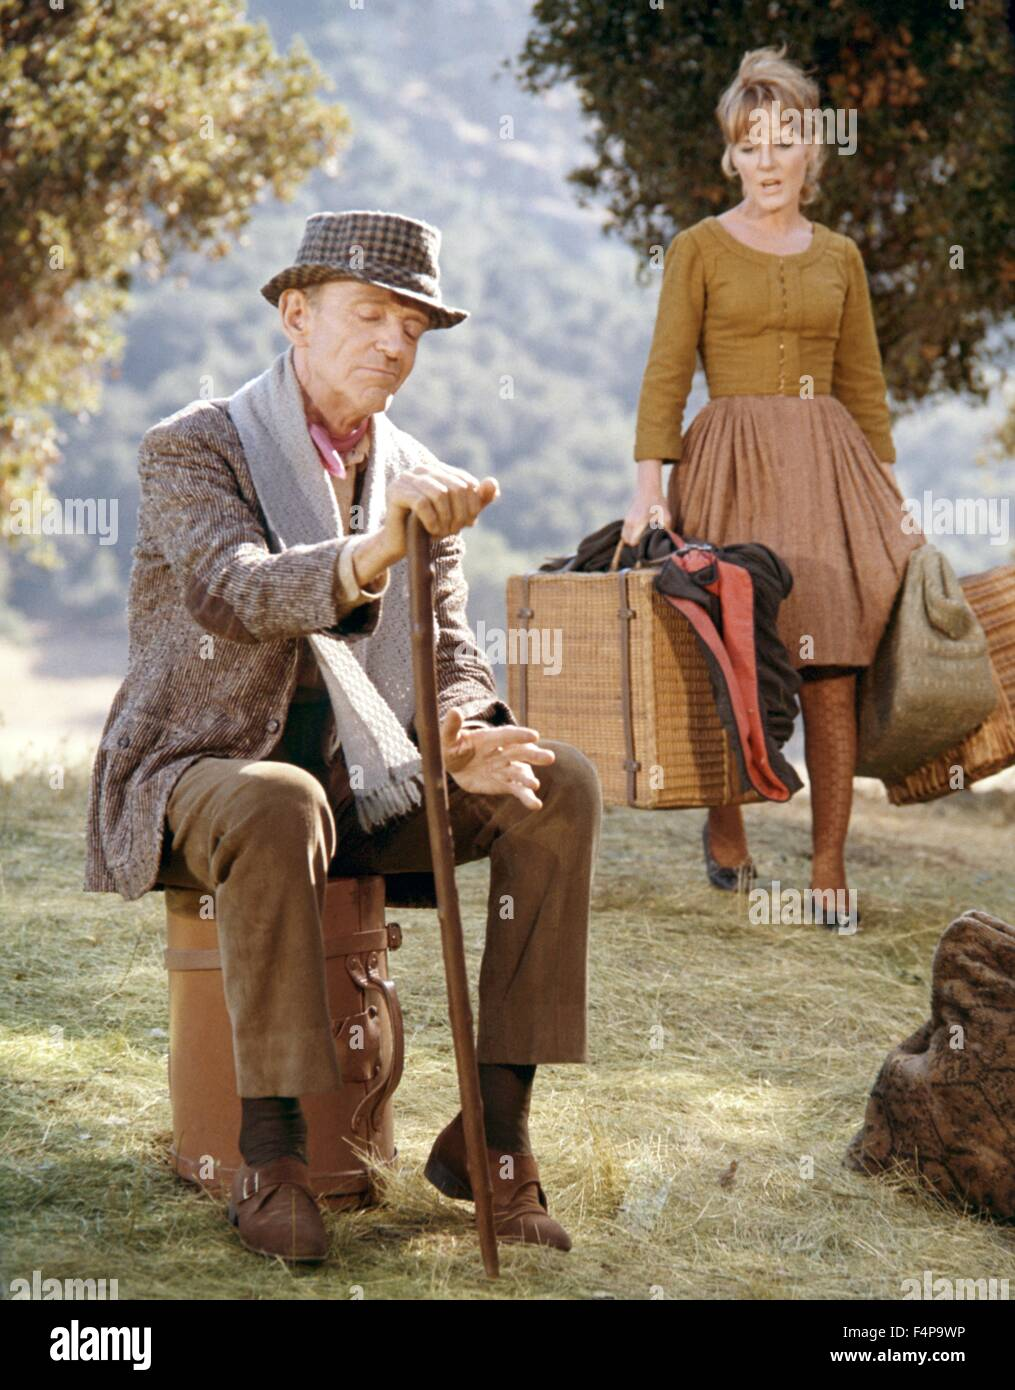 Petula Clark, Fred Astaire / Finian's Rainbow 1968 directed by Francis Ford Coppola Stock Photo